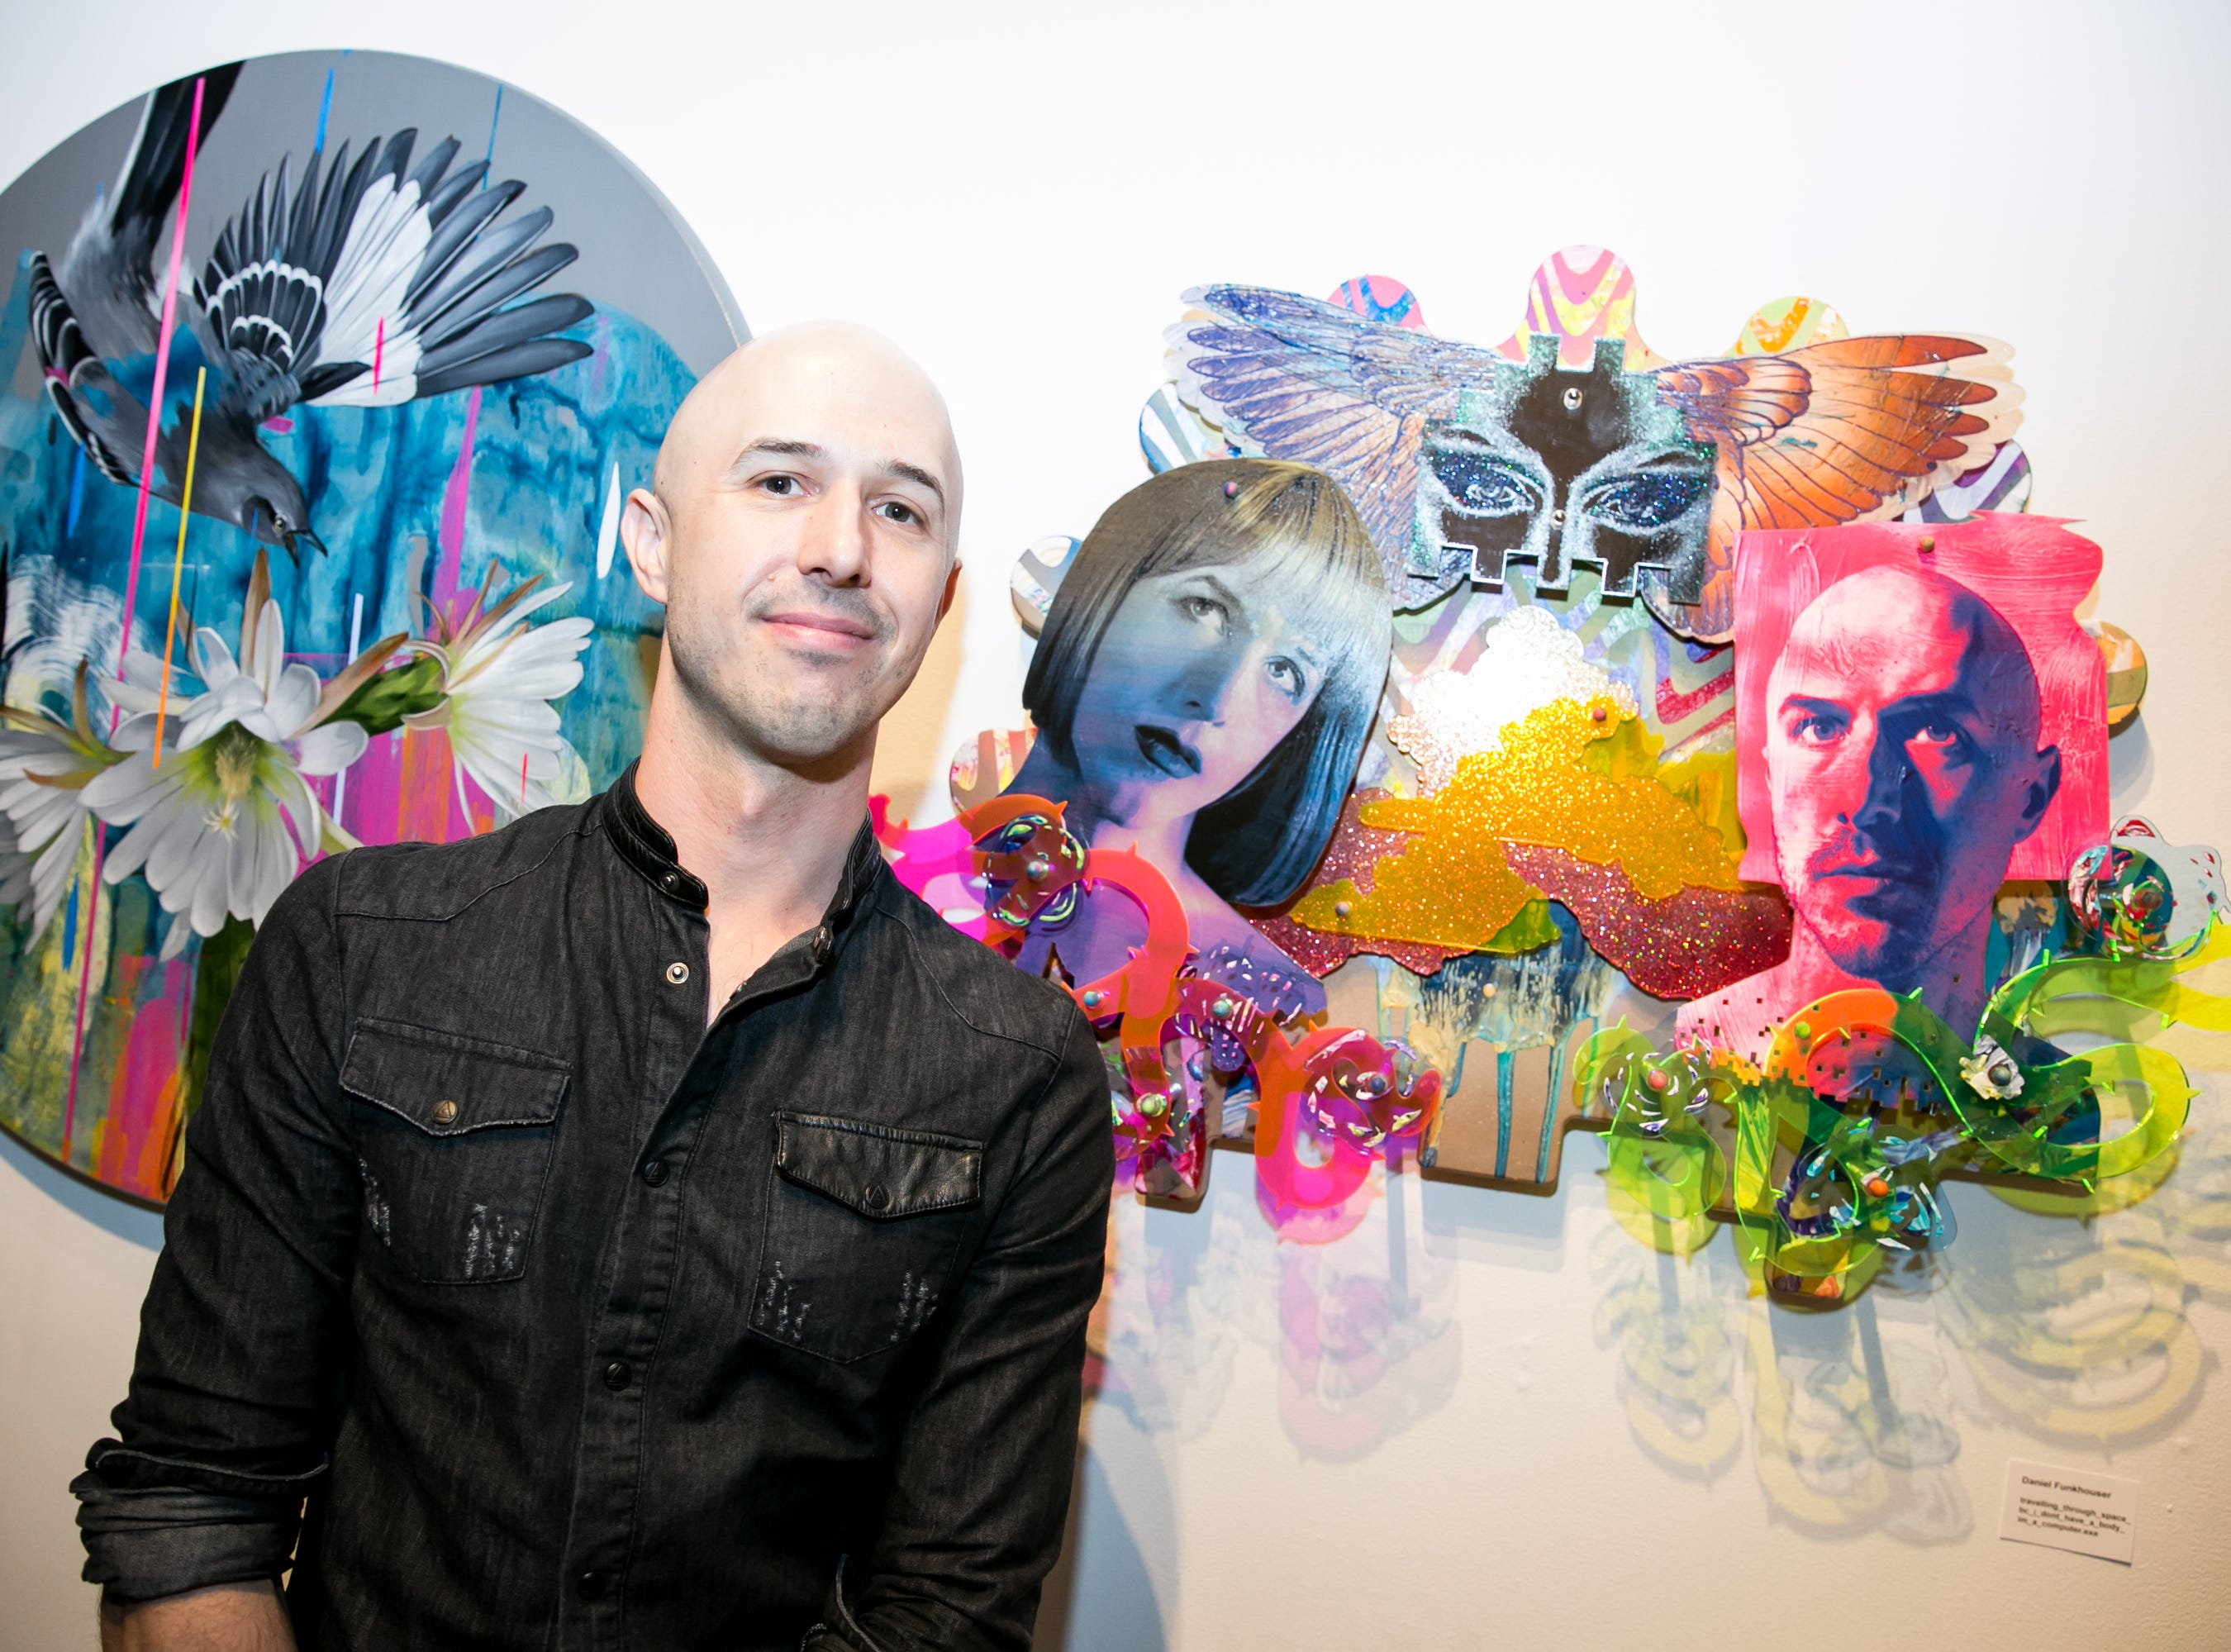 Daniel Funkhouser shows two sides of himself at Chaos Theory 19 at Legend City Studios during First Friday on October 5, 2018.